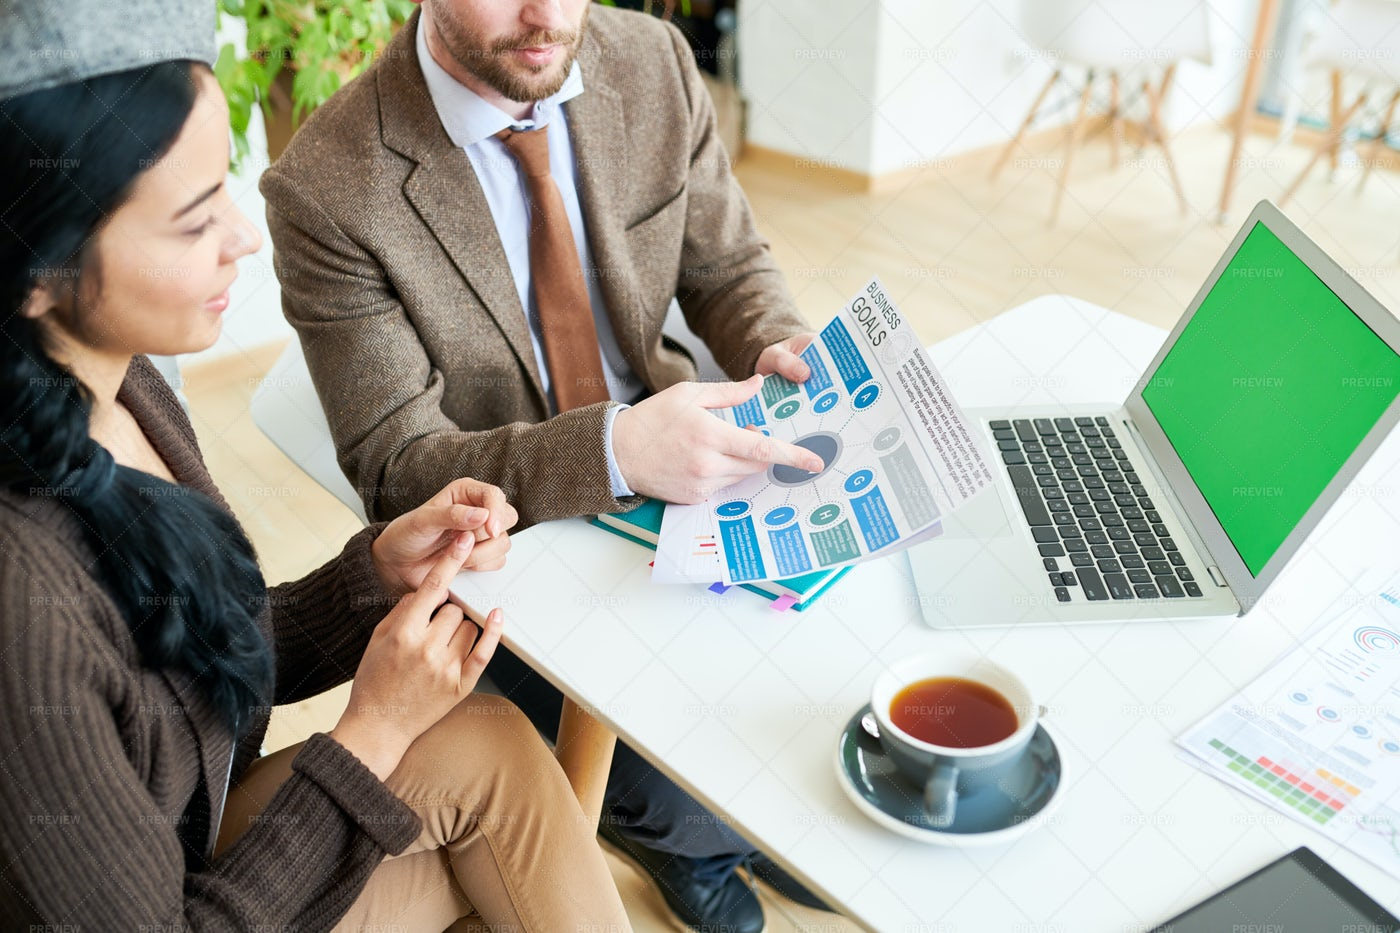 Business People Discussing Strategy: Stock Photos